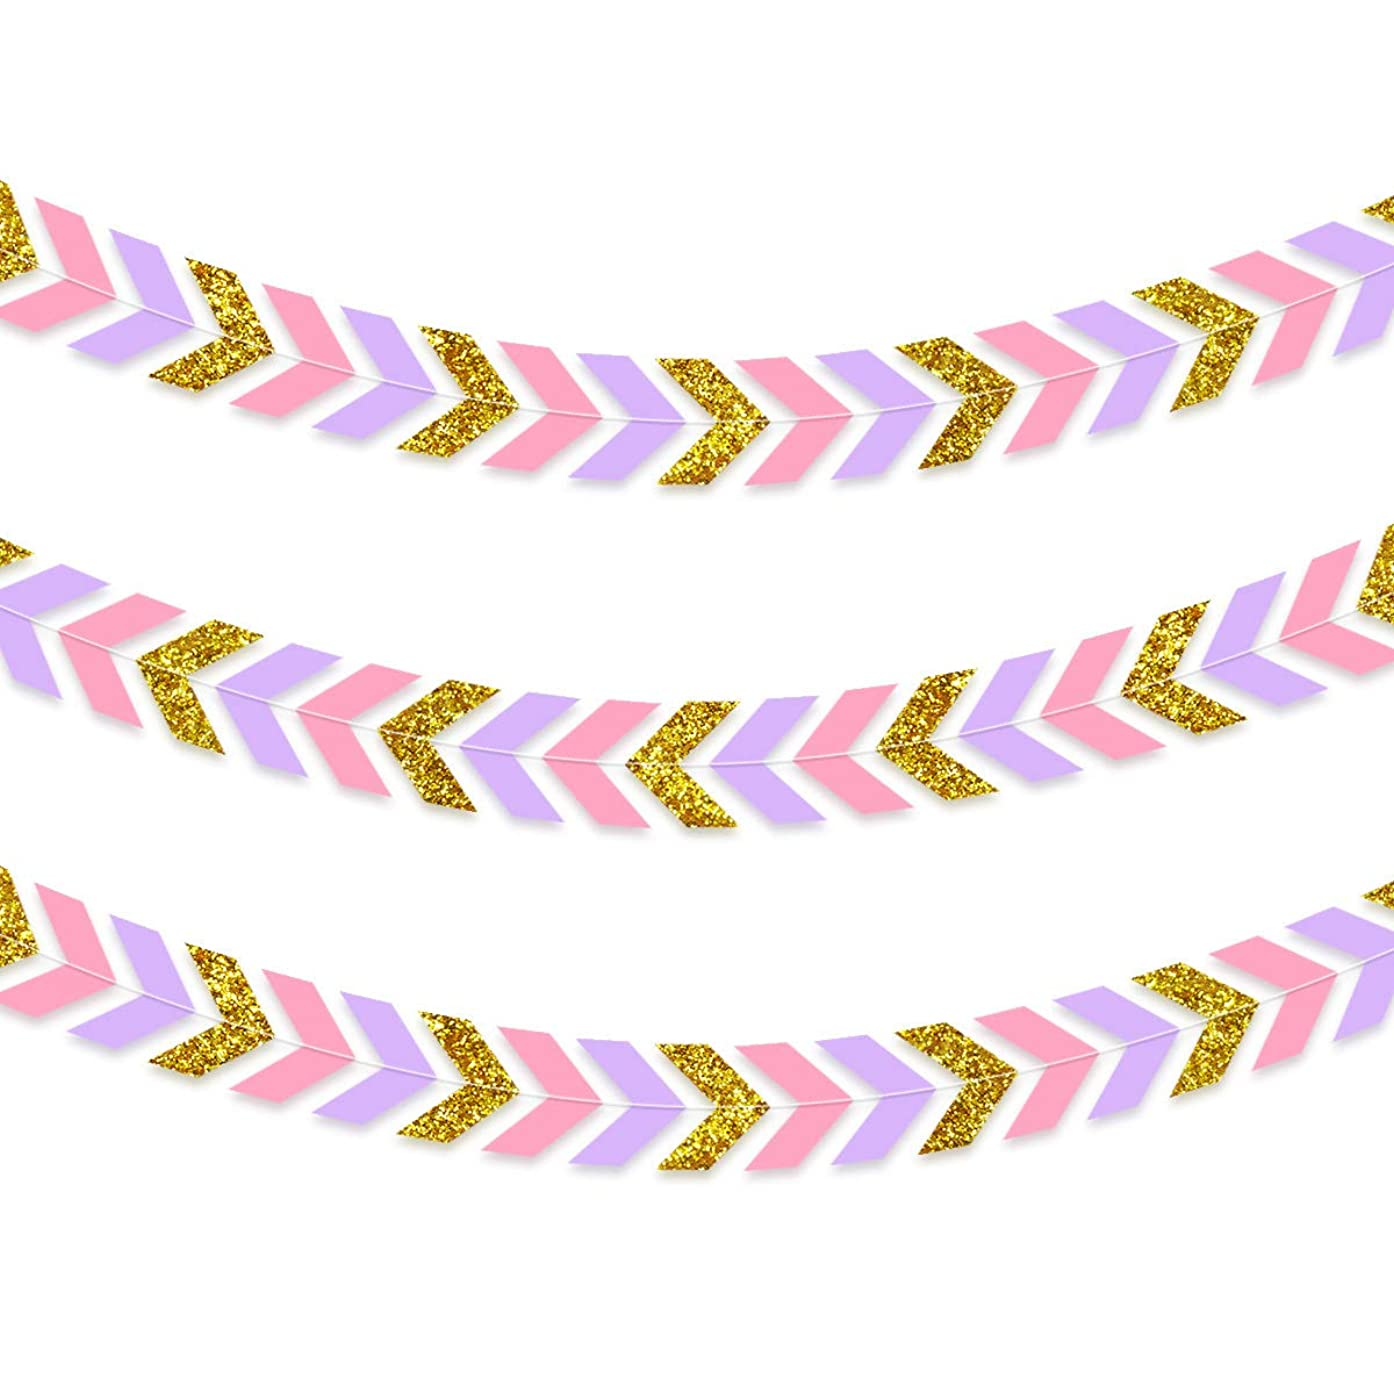 NICROLANDEE 3pcs Spring Wedding Paper Garland Pink Purple Tribal Banner Gold Glitter Arrow Banner Chevron Design for Womens Birthday Bridal Shower Wedding Valentines Baby Shower Party Decorations Wall